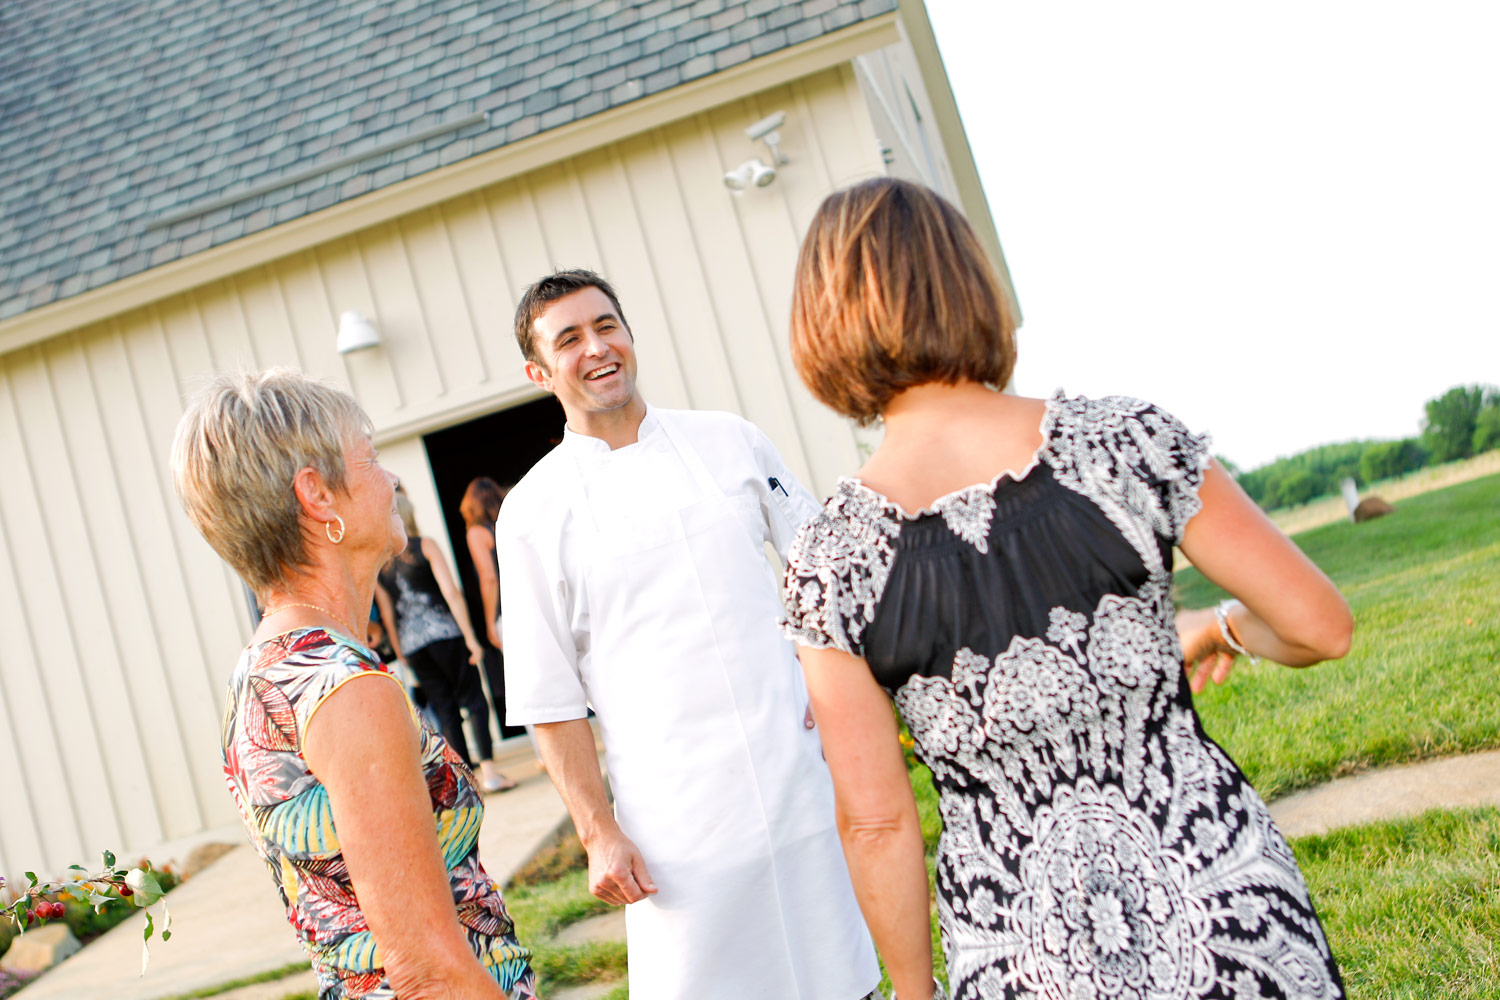 event-photographer-madison-wi-dane-county-gala-fundraiser-ruthie-hauge-photography-farm-to-table 20.jpg